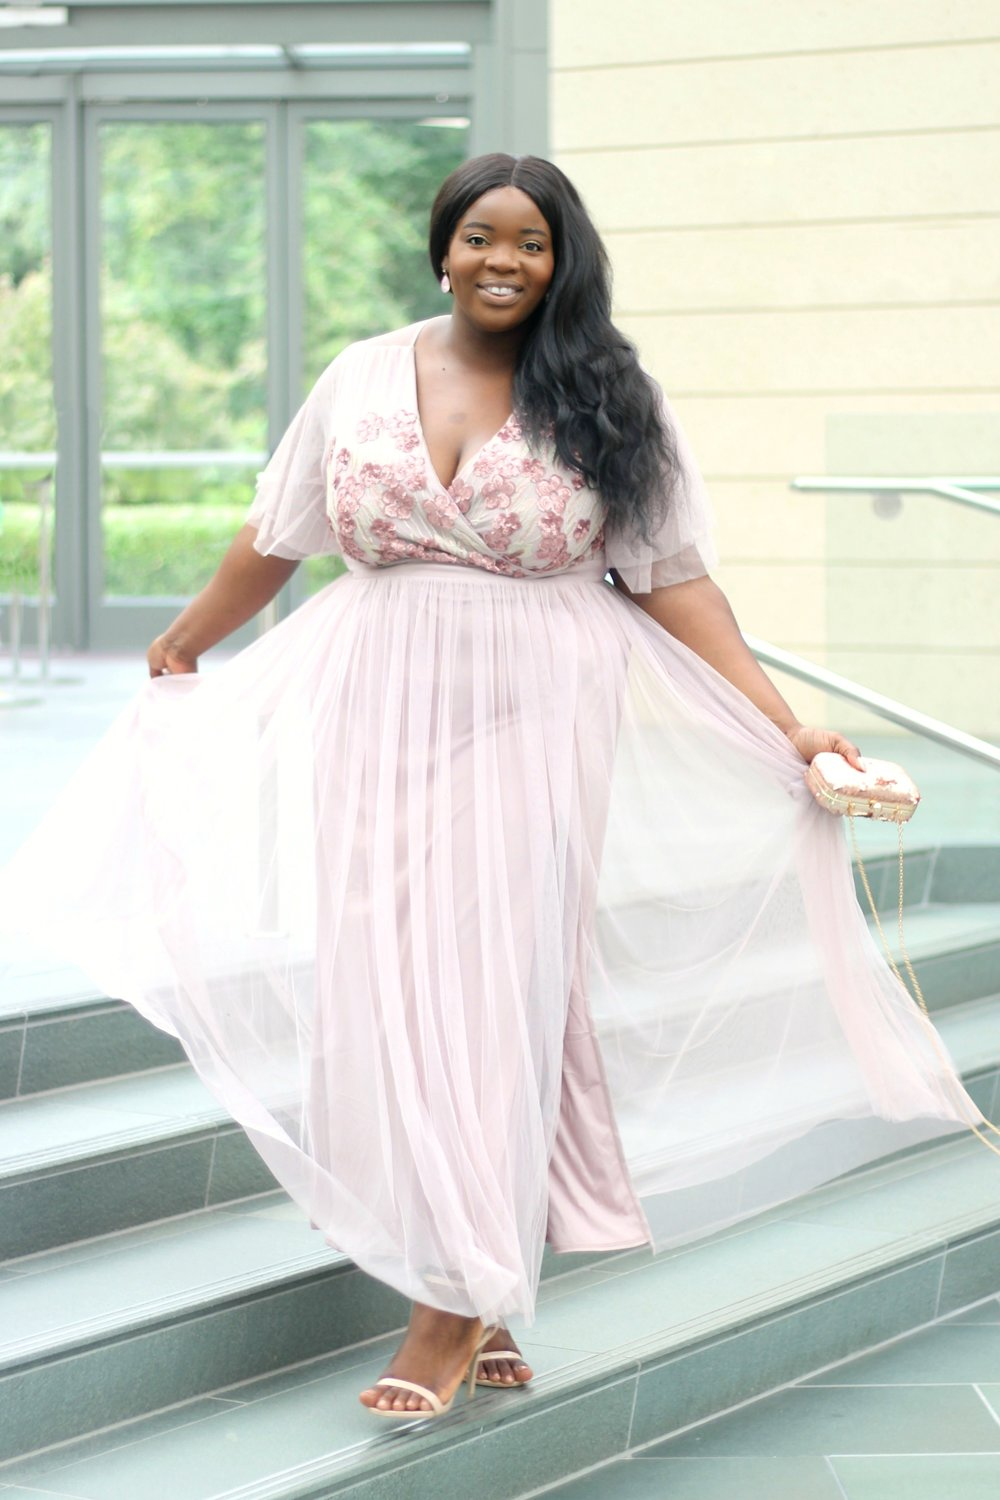 plus-size-simply-be-occasion-wear-pink-mesh-dress-valerie-eguavoen-1.jpg